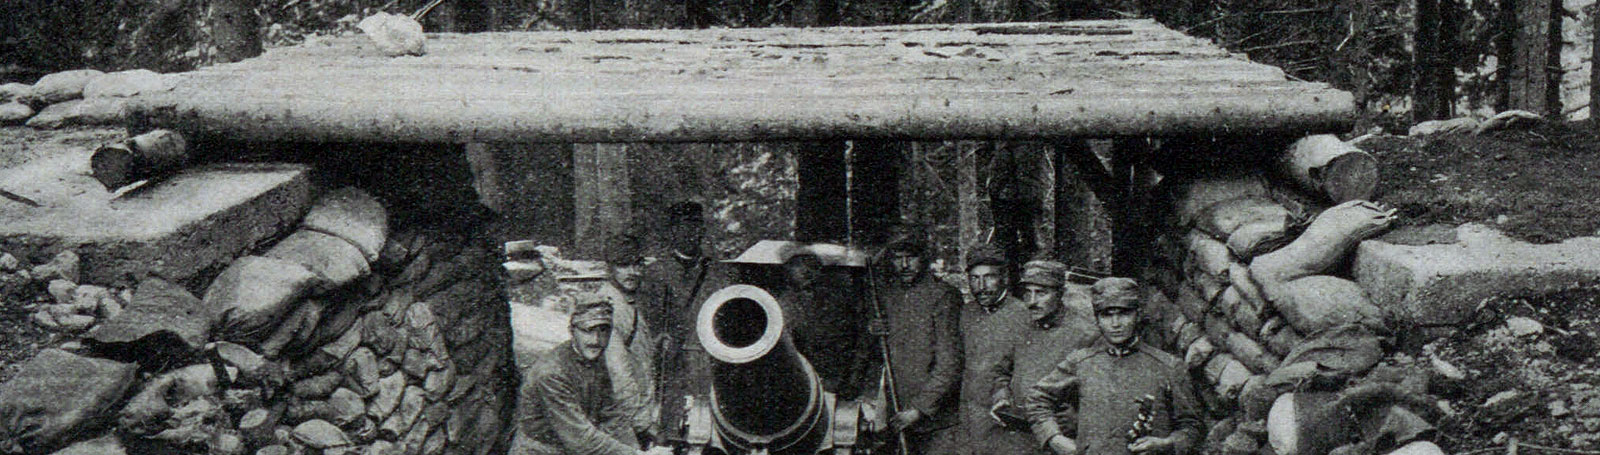 Photograph of men with heavy artillery